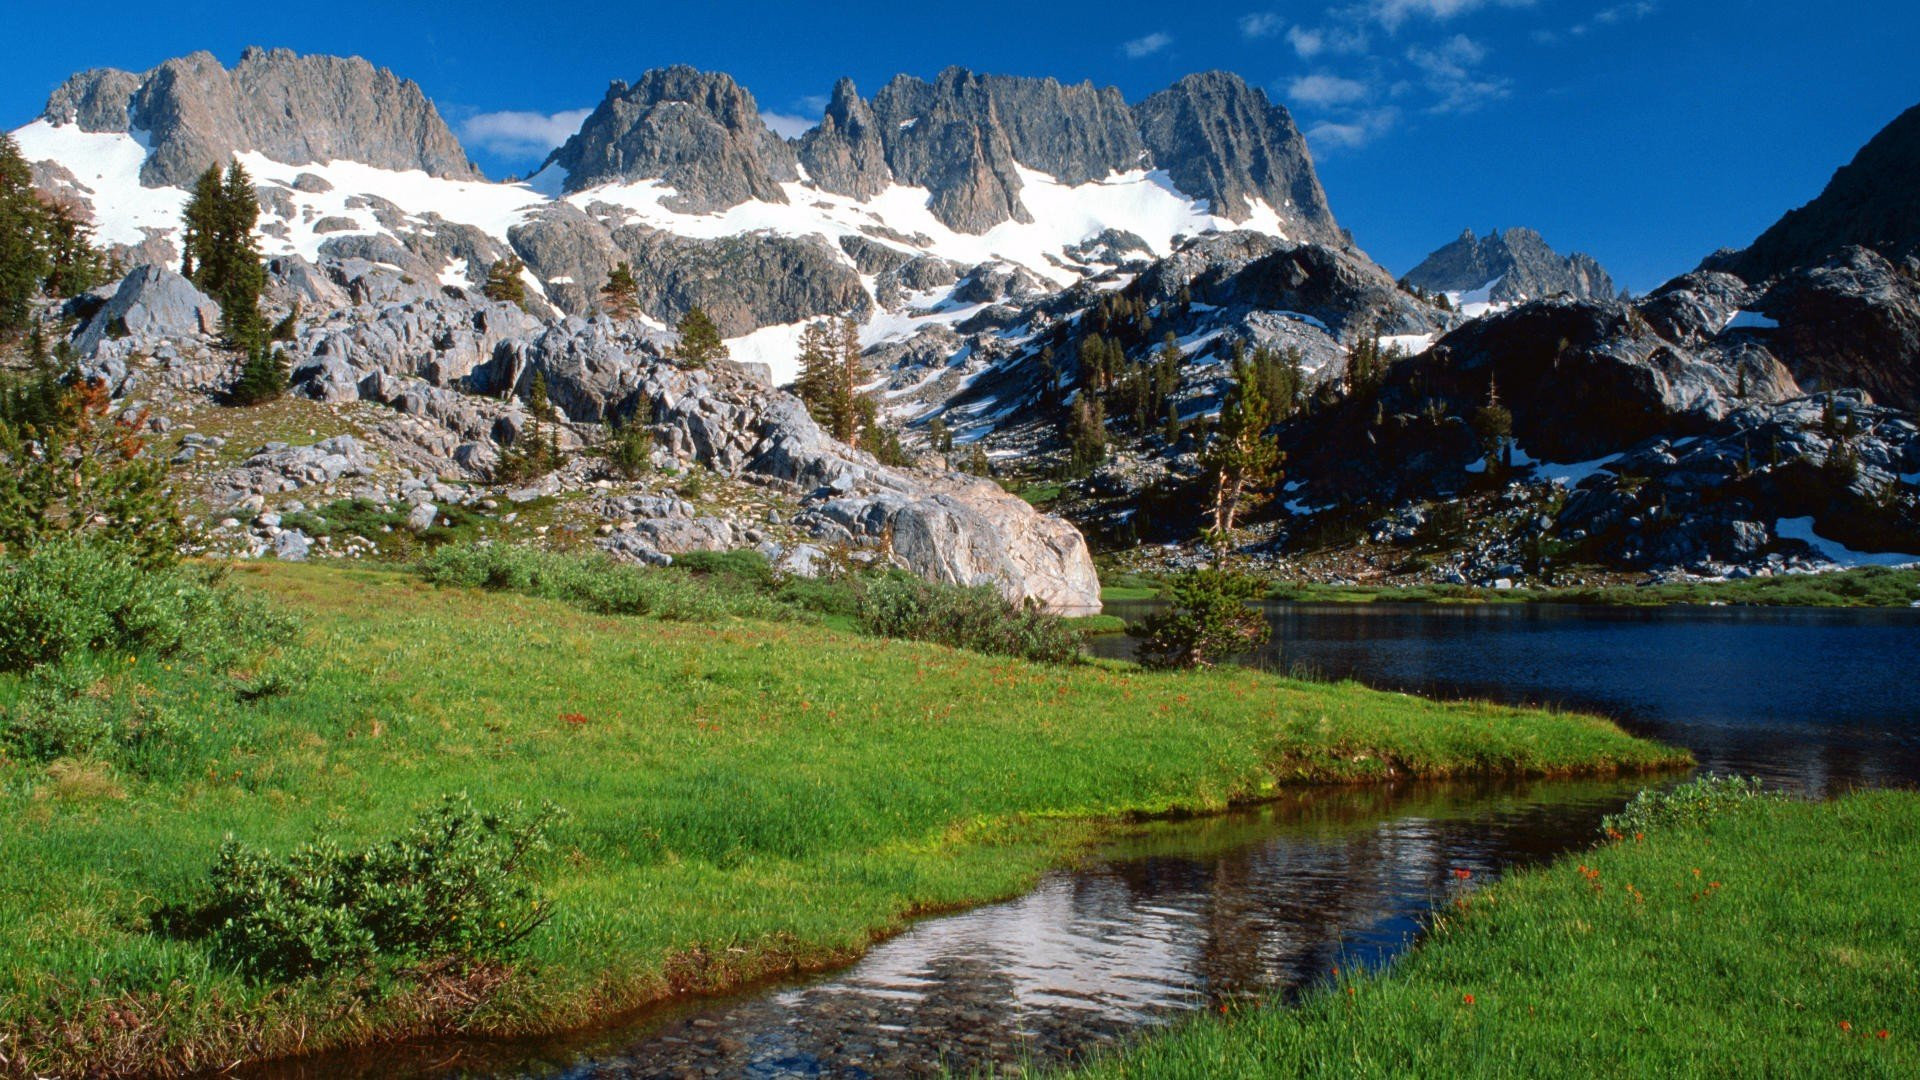 Ansel adams wilderness hd wallpaper - Hd wilderness wallpapers ...